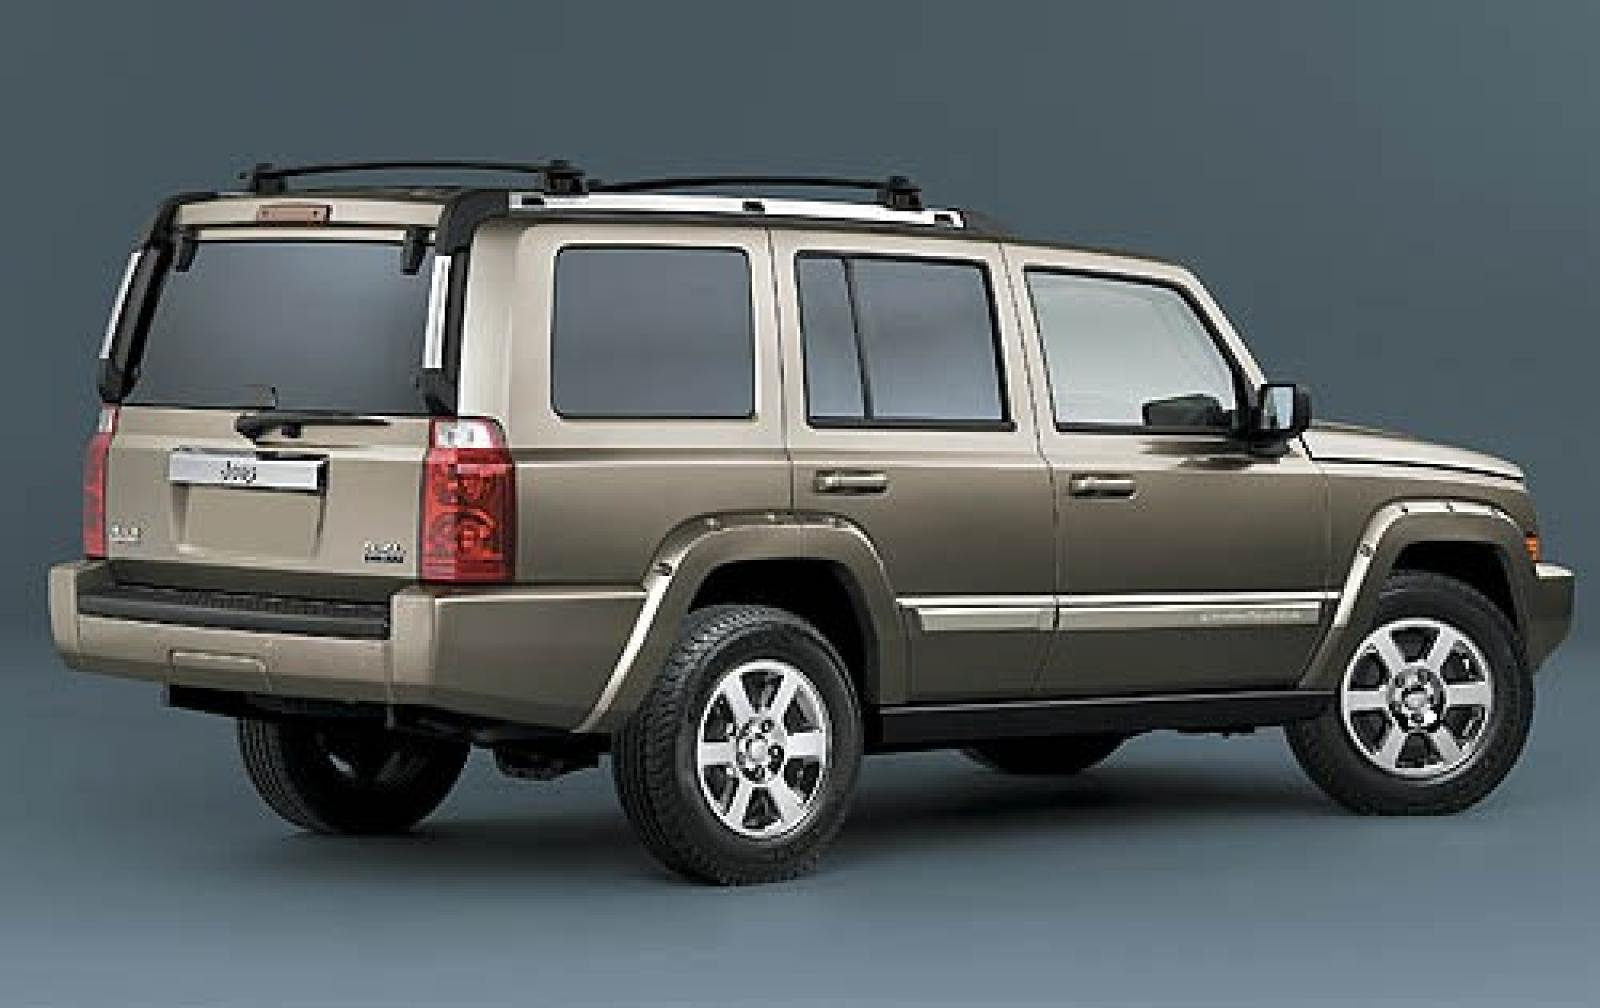 2006 jeep commander - information and photos - zombiedrive